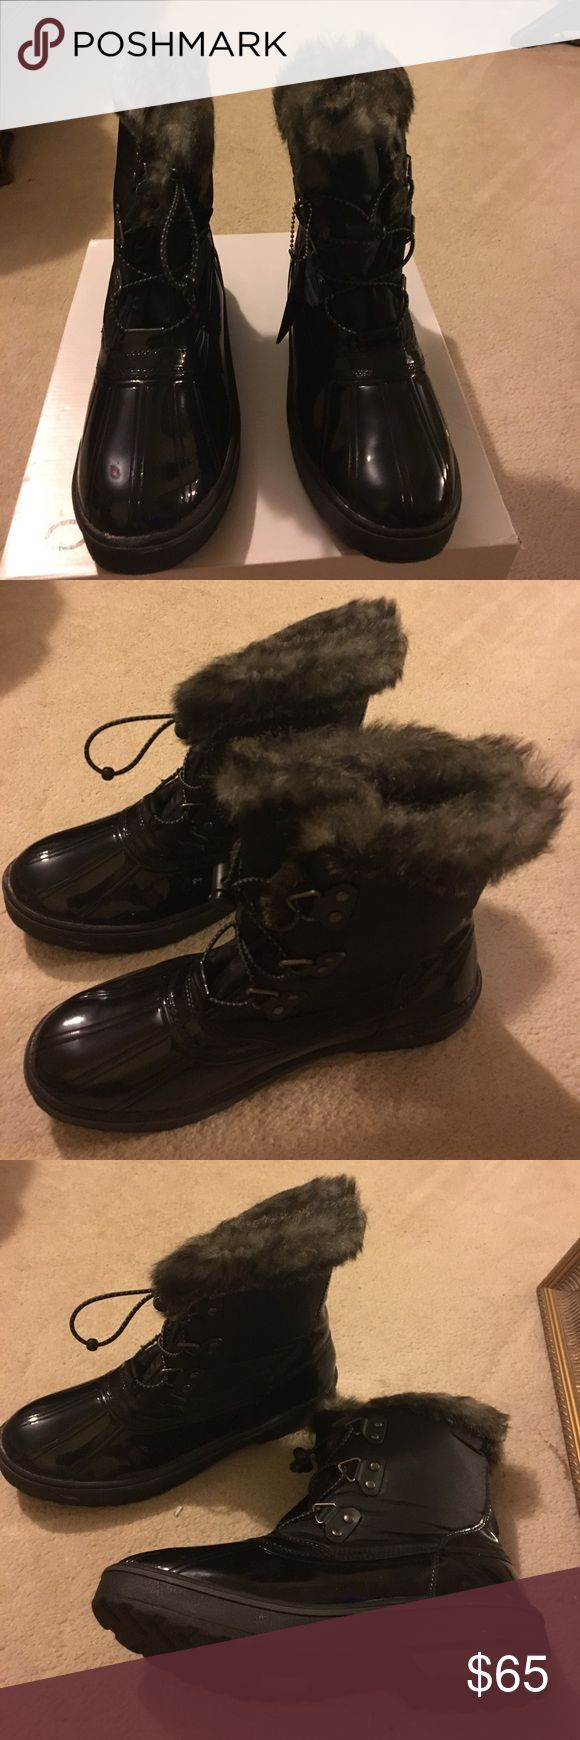 Women's Blk patent leather Winter snow boots Very comfortable snow boots. NEVER WORN Aldo Shoes Winter & Rain Boots